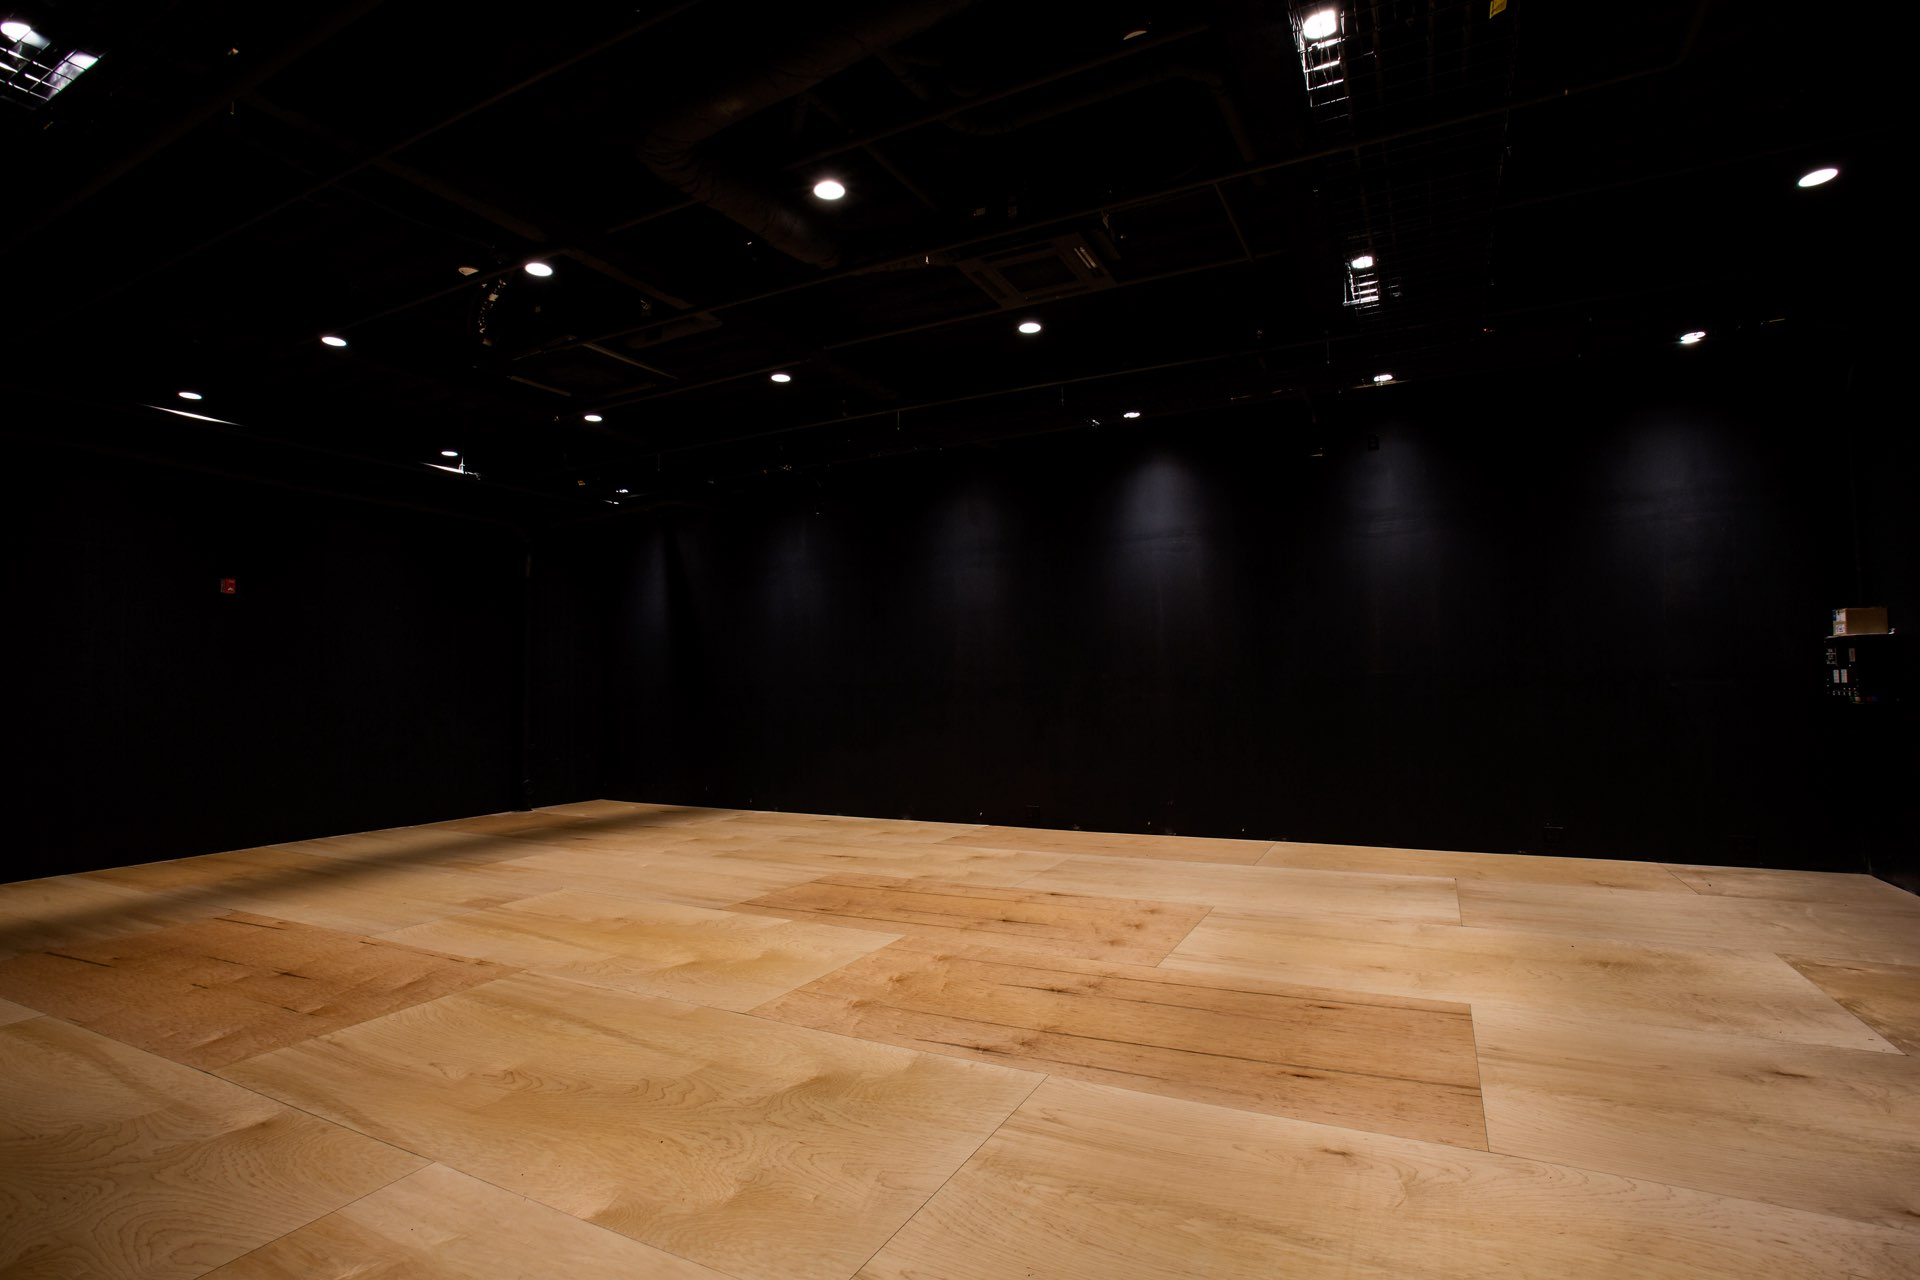 Stage, Egyptian Black Box Theater, architectural design by Elliott Workgroup